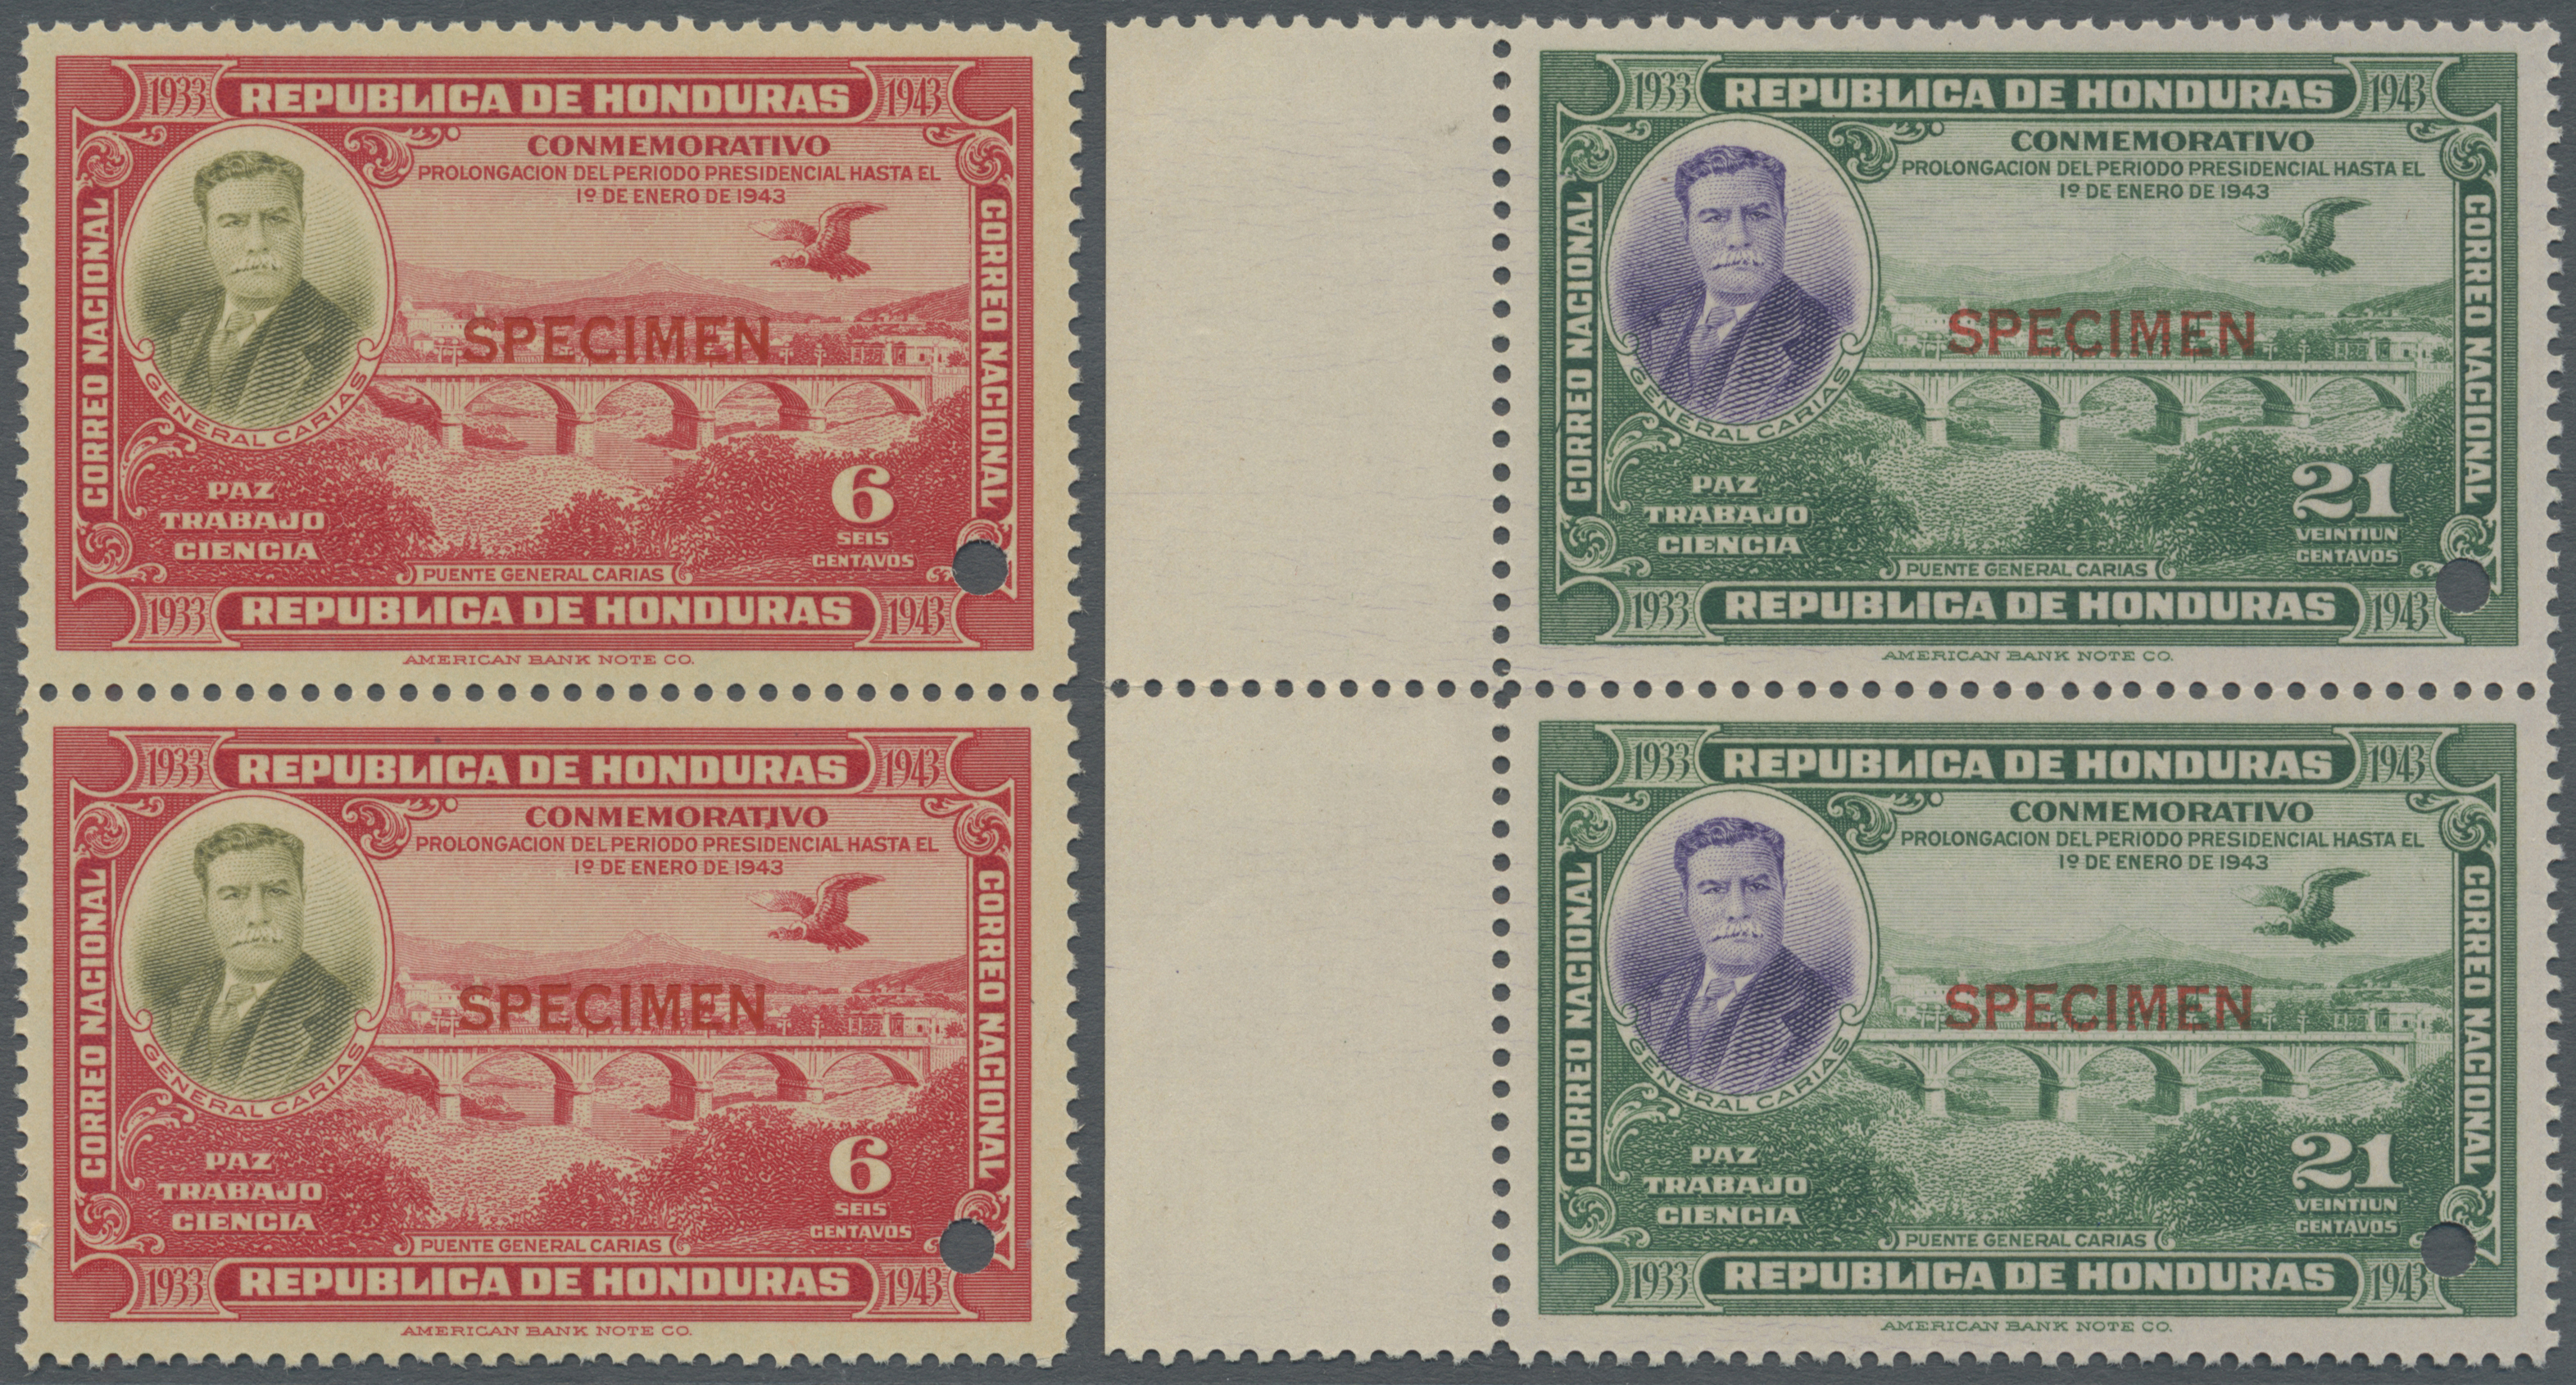 Lot 13849 - Honduras  -  Auktionshaus Christoph Gärtner GmbH & Co. KG Single lots Philately Overseas & Europe. Auction #39 Day 4